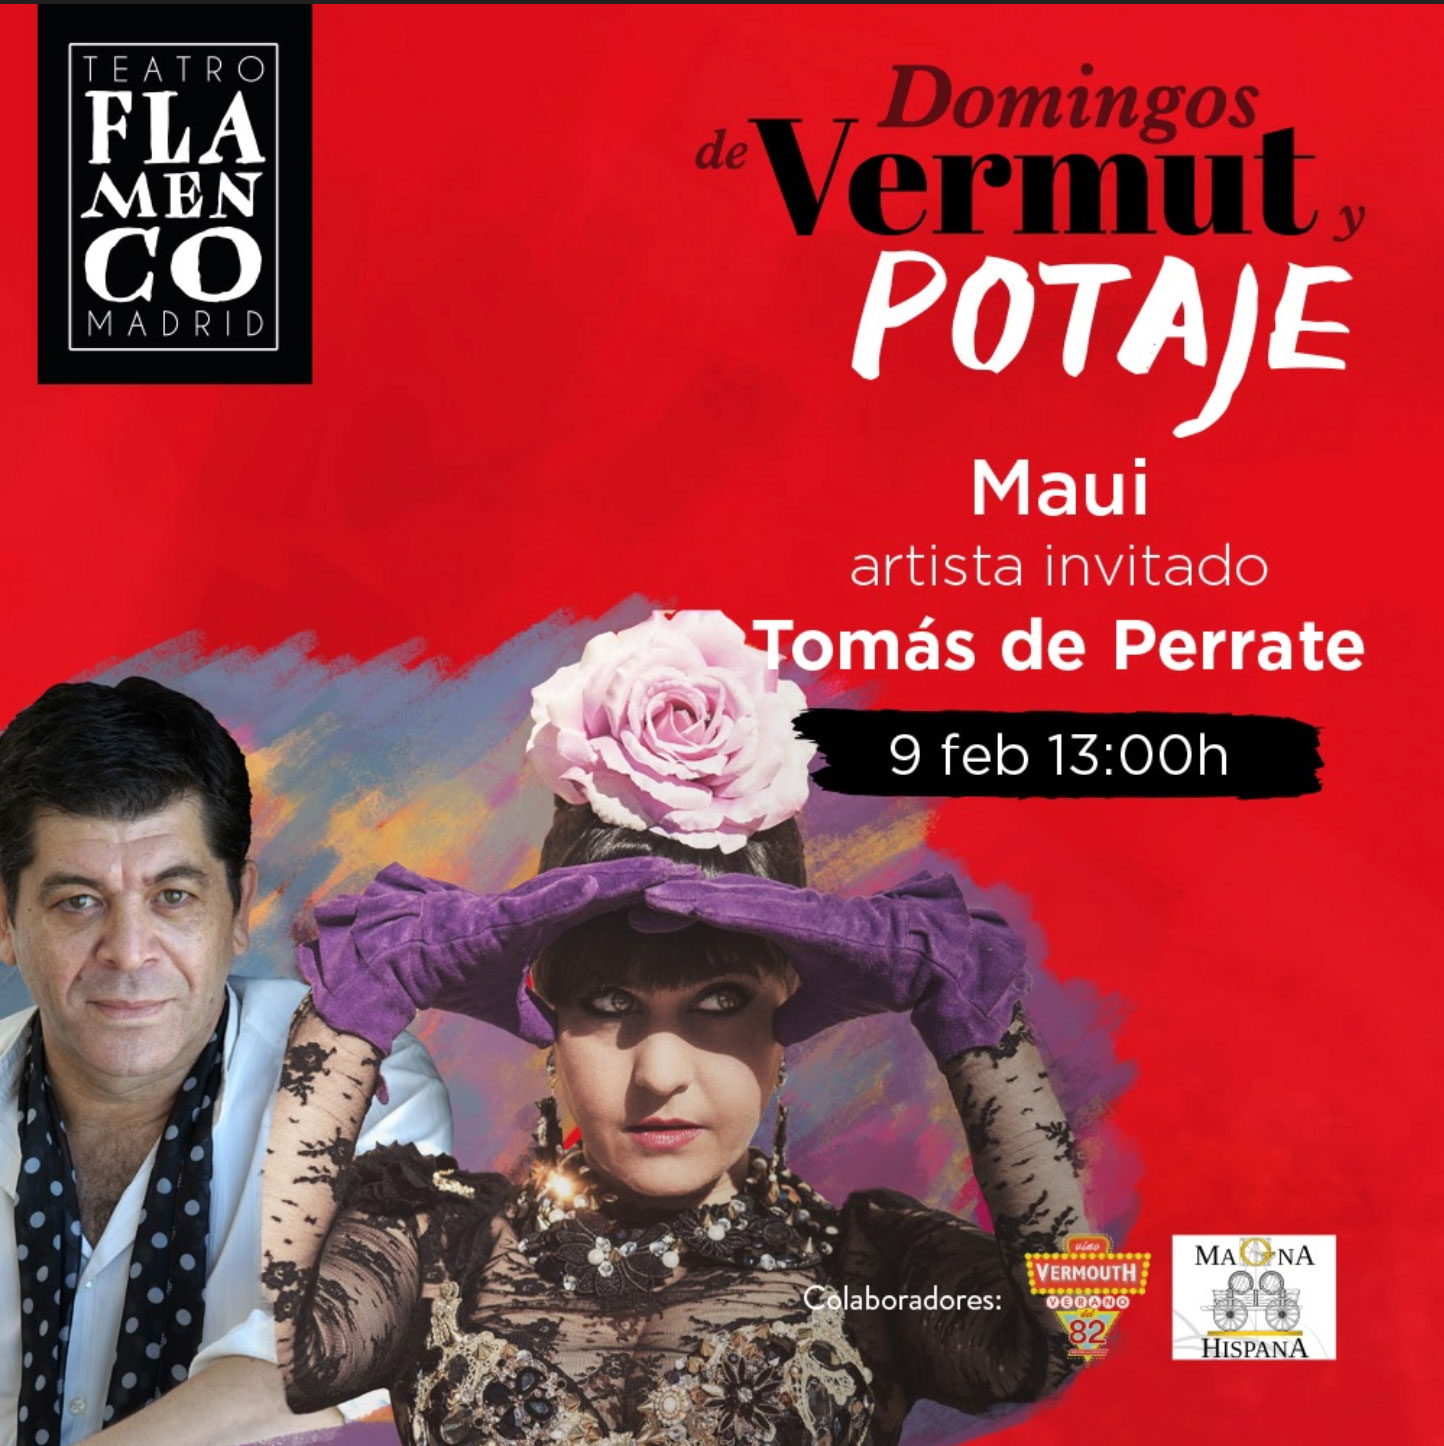 Potaje flamenco - Maui & Perrate